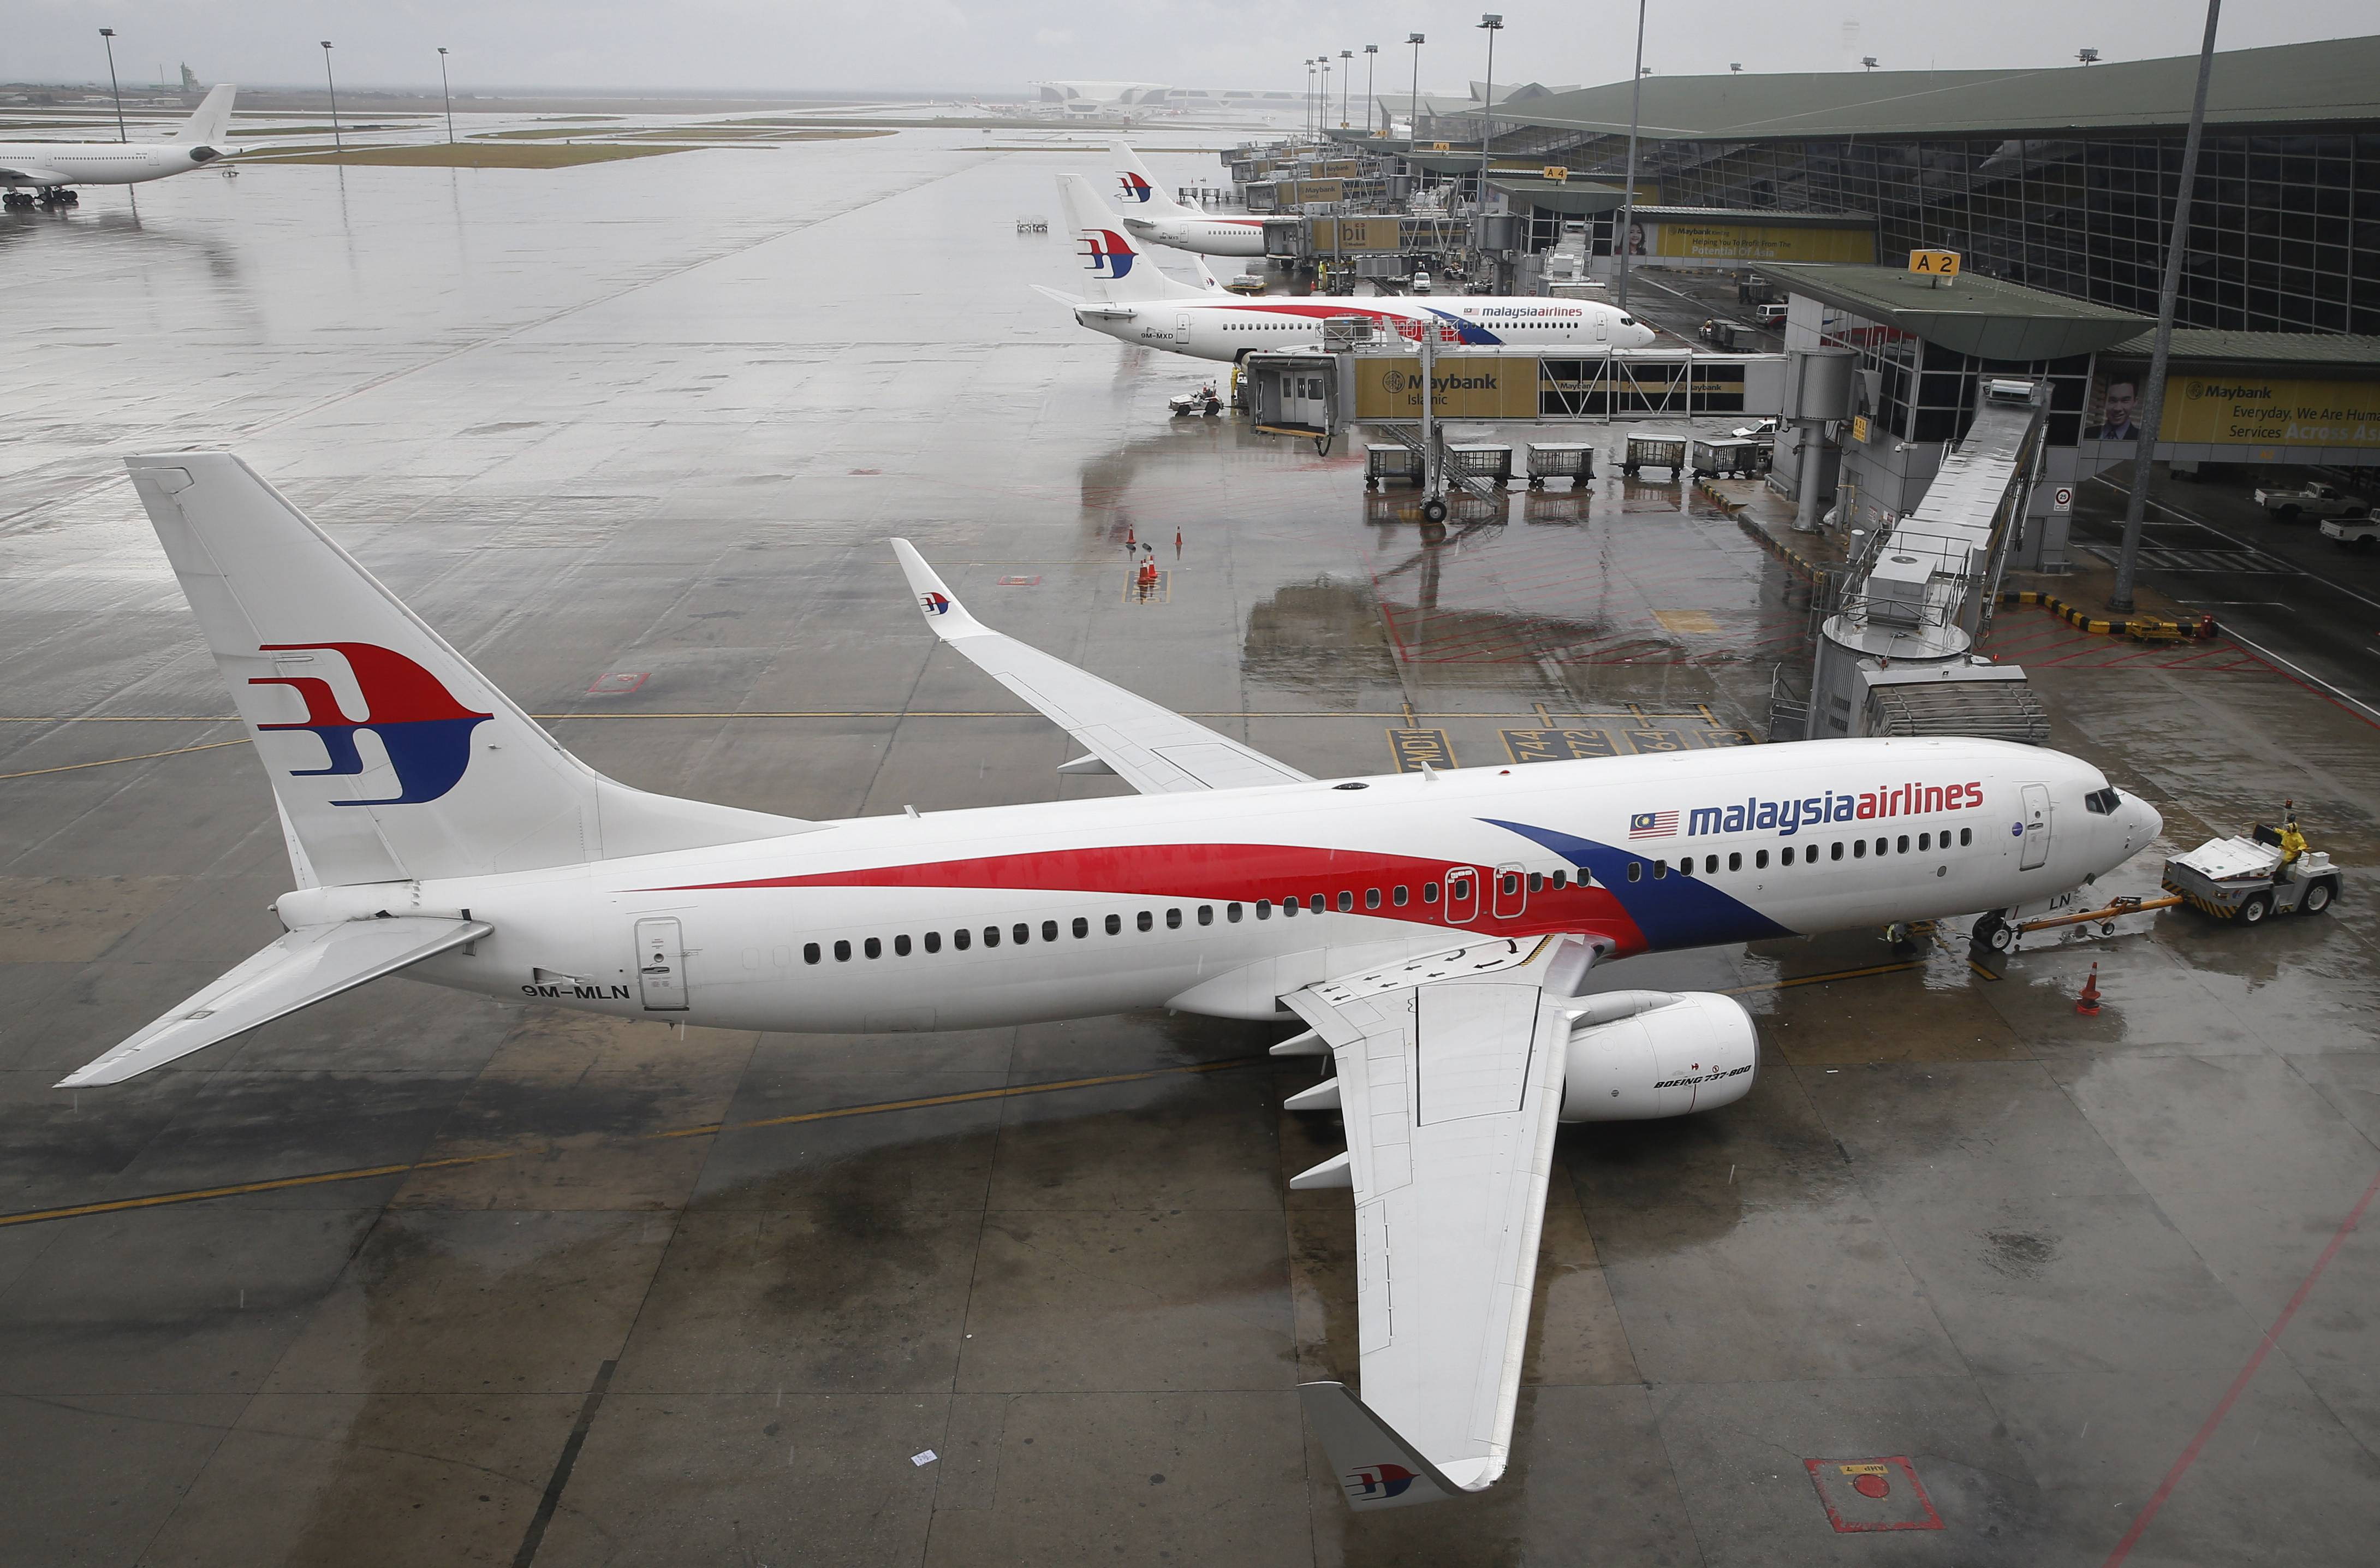 A Malaysia Airlines Boeing 737-800 plane sits on tarmac at Kuala Lumpur International Airport in Sepang, Malaysia.